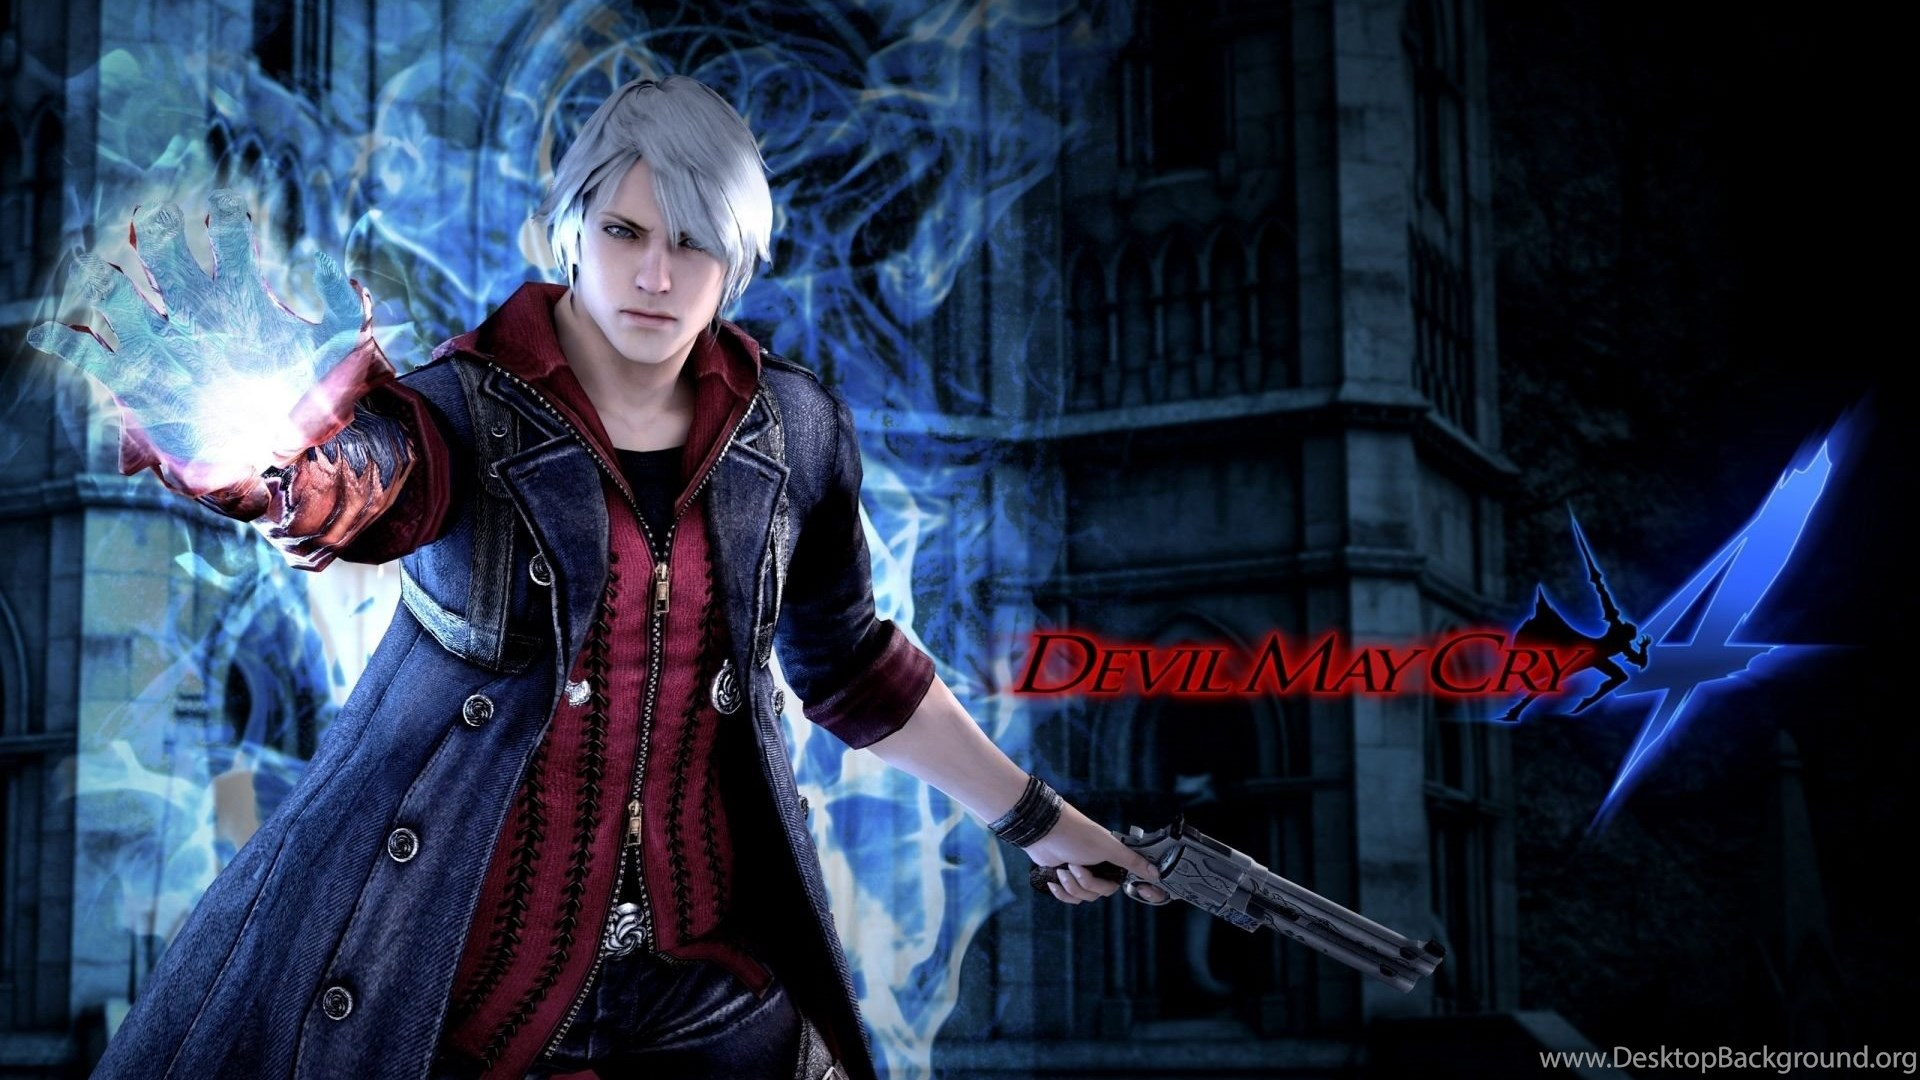 Wallpapers Hd Devil May Cry 4 Poster Hd Wallpapers Expert Desktop